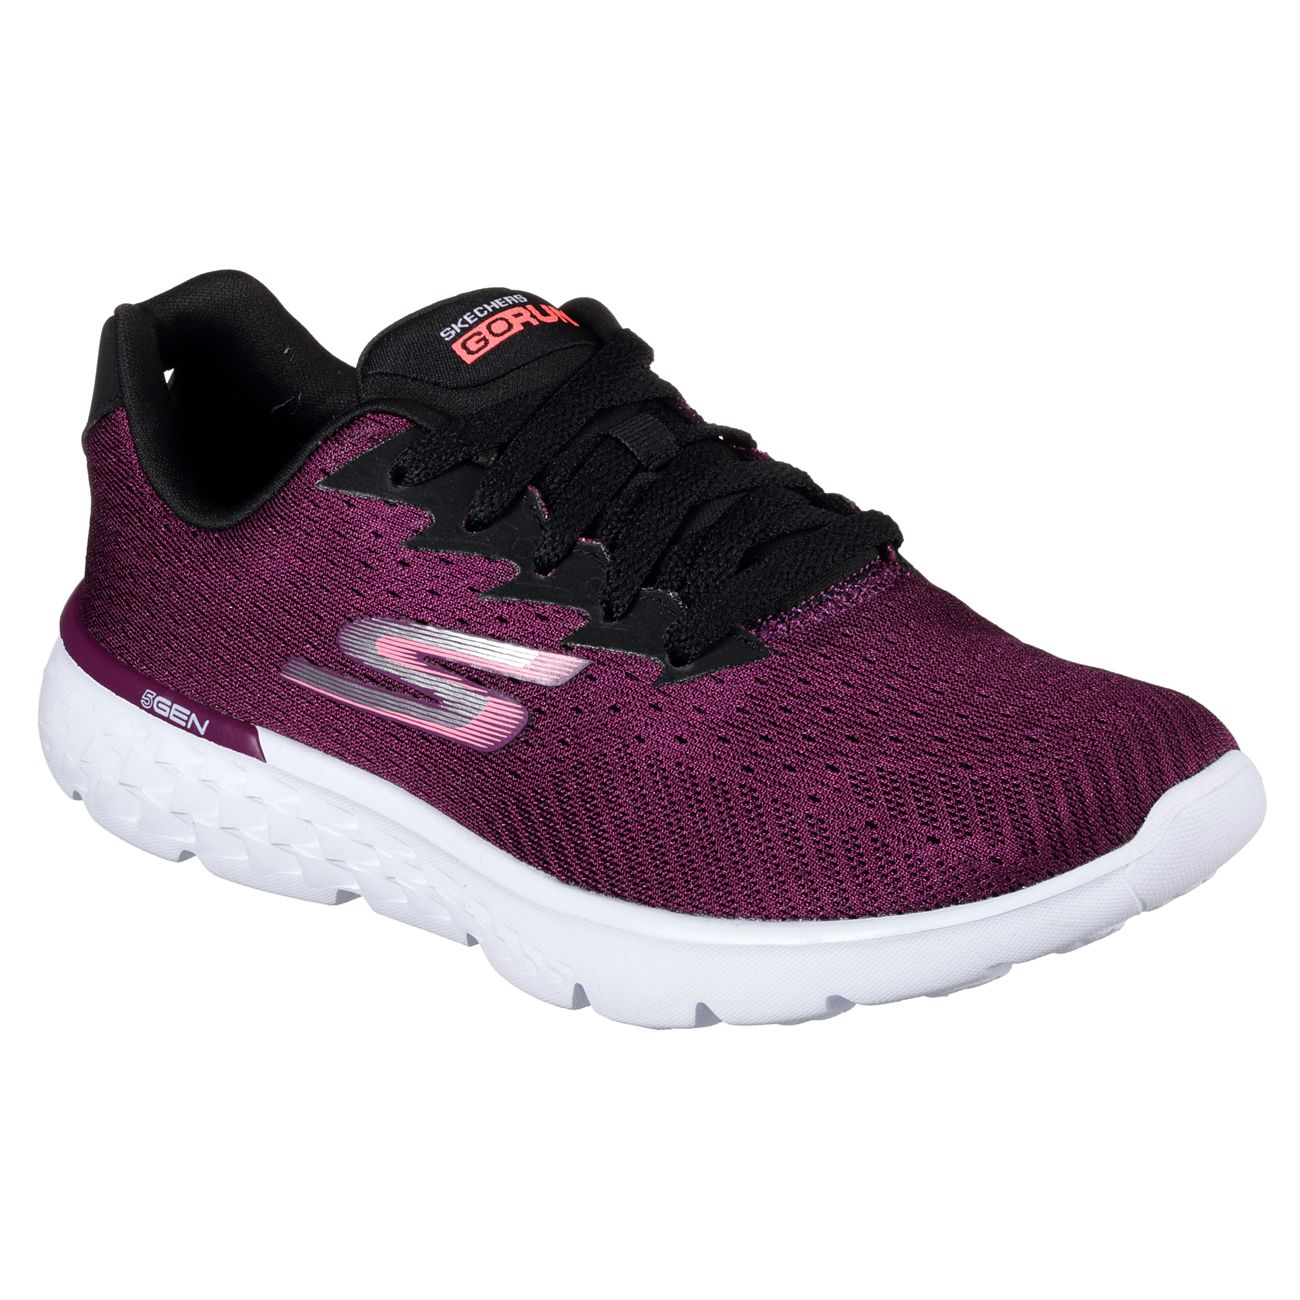 Skechers Go Run 400 Sole Ladies Running Shoes Sweatbandcom